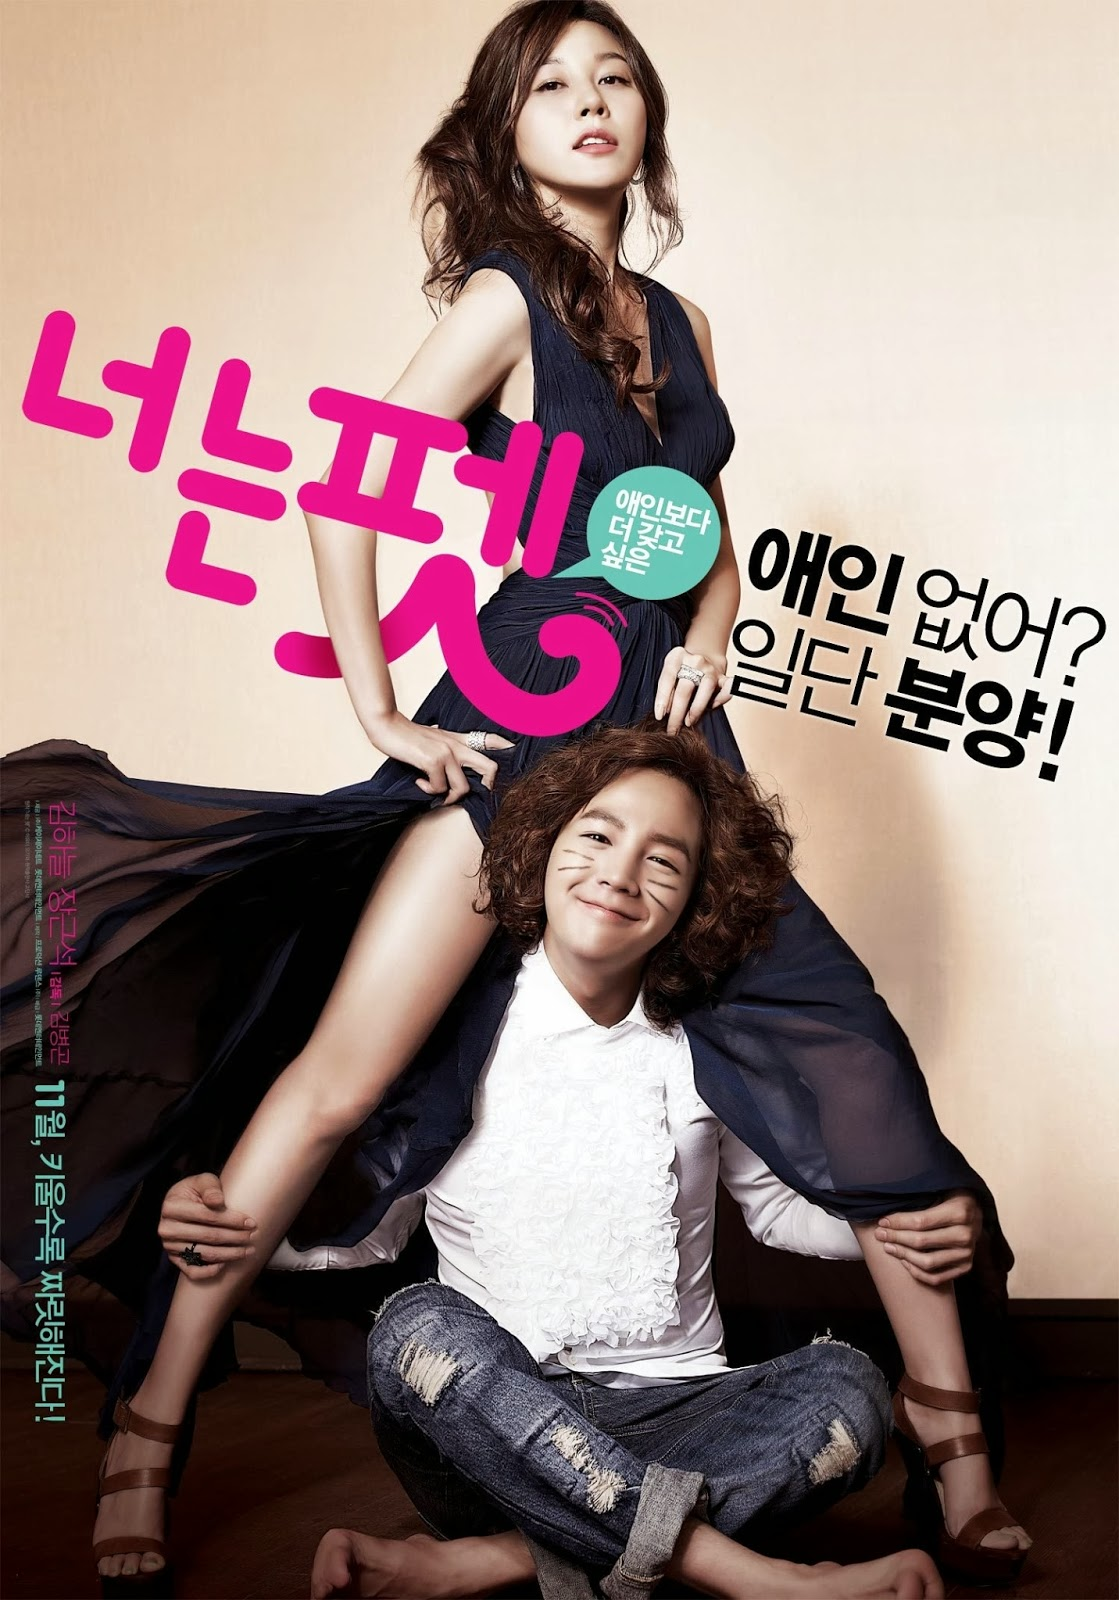 You're My Pet Film Korea, Kim Ha-Neul, Jang Geun Suk, Bluray,  Kim Byeong-kon, Yayoi Ogawa, Komedi Romantis Free Download Movie Cantik ganteng